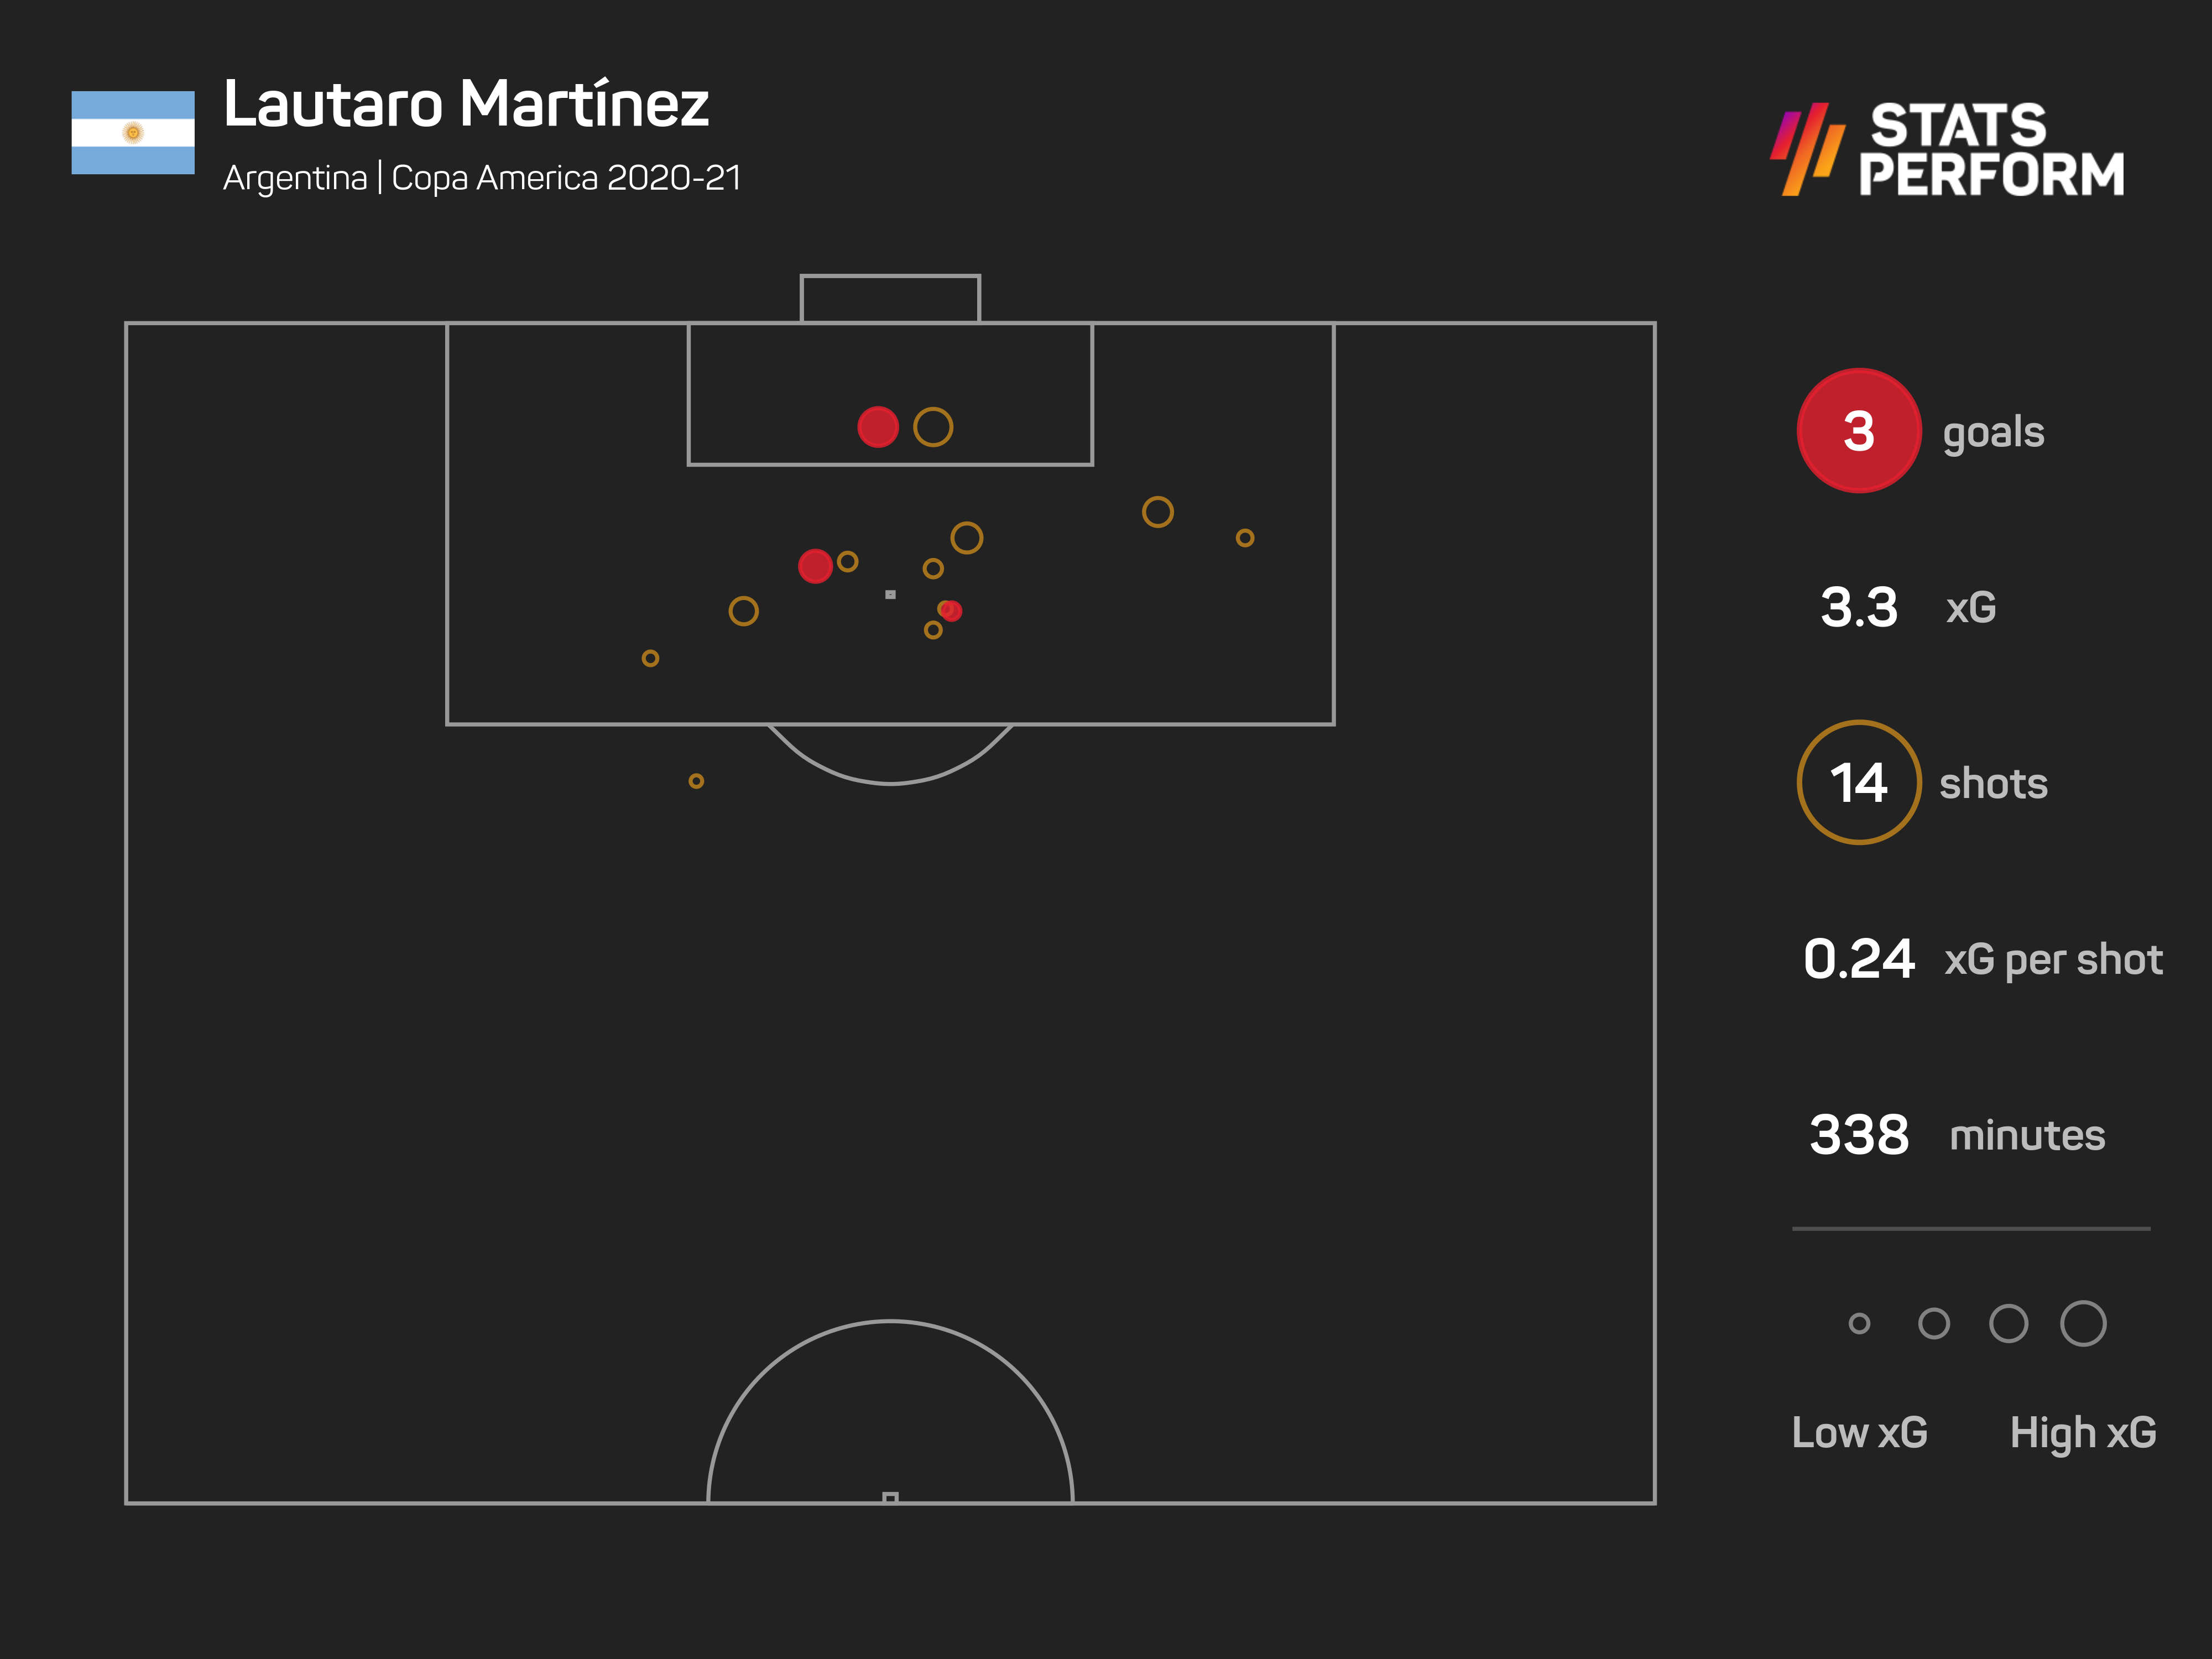 Lautaro Martinez has missed some good opportunities, but he's still one of only two players with more than two goals at the tournament